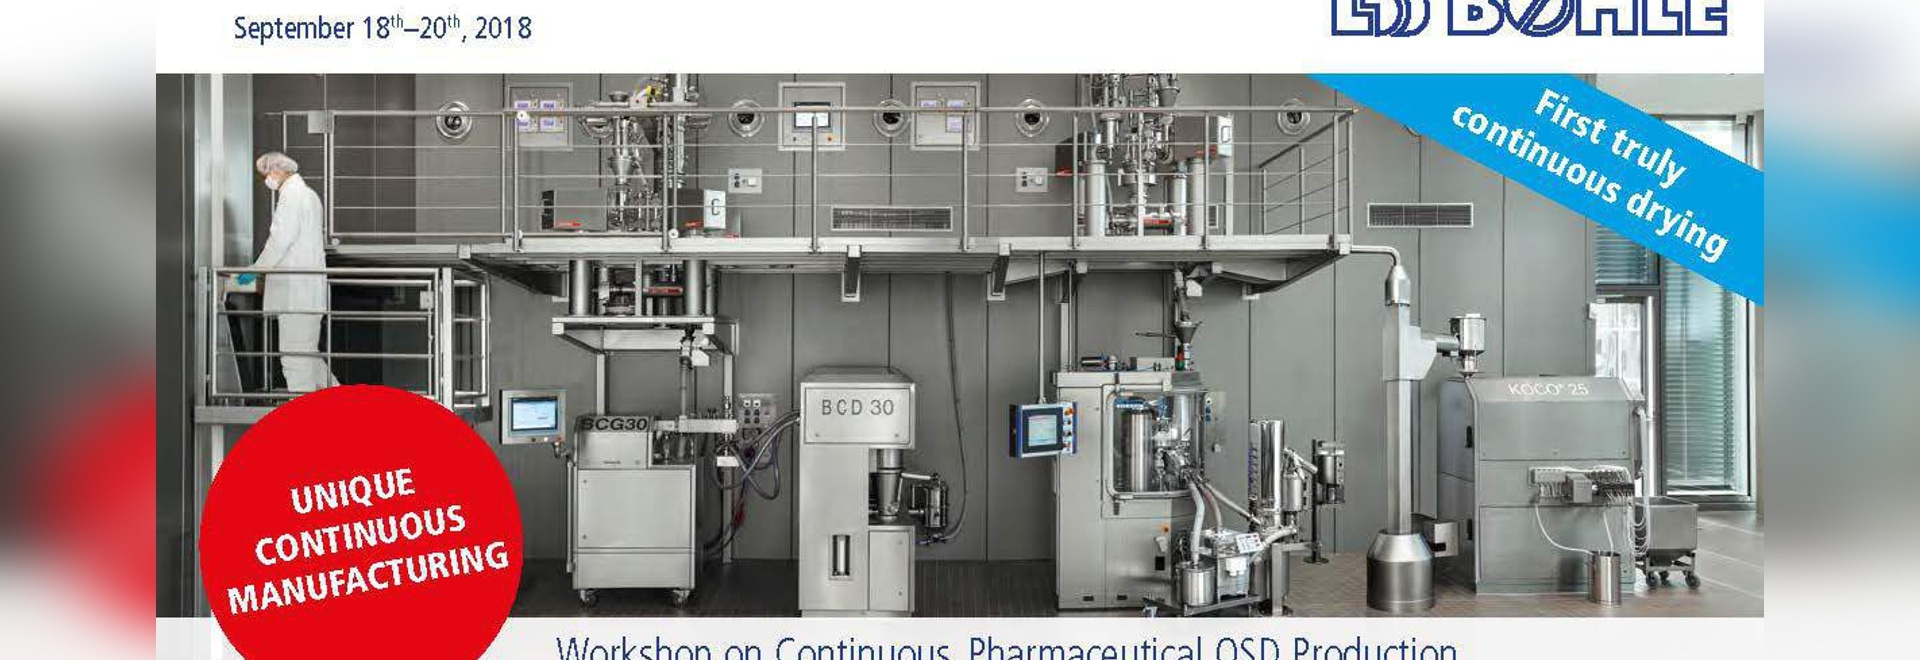 Workshop on Continuous Pharmaceutical Manufacturing